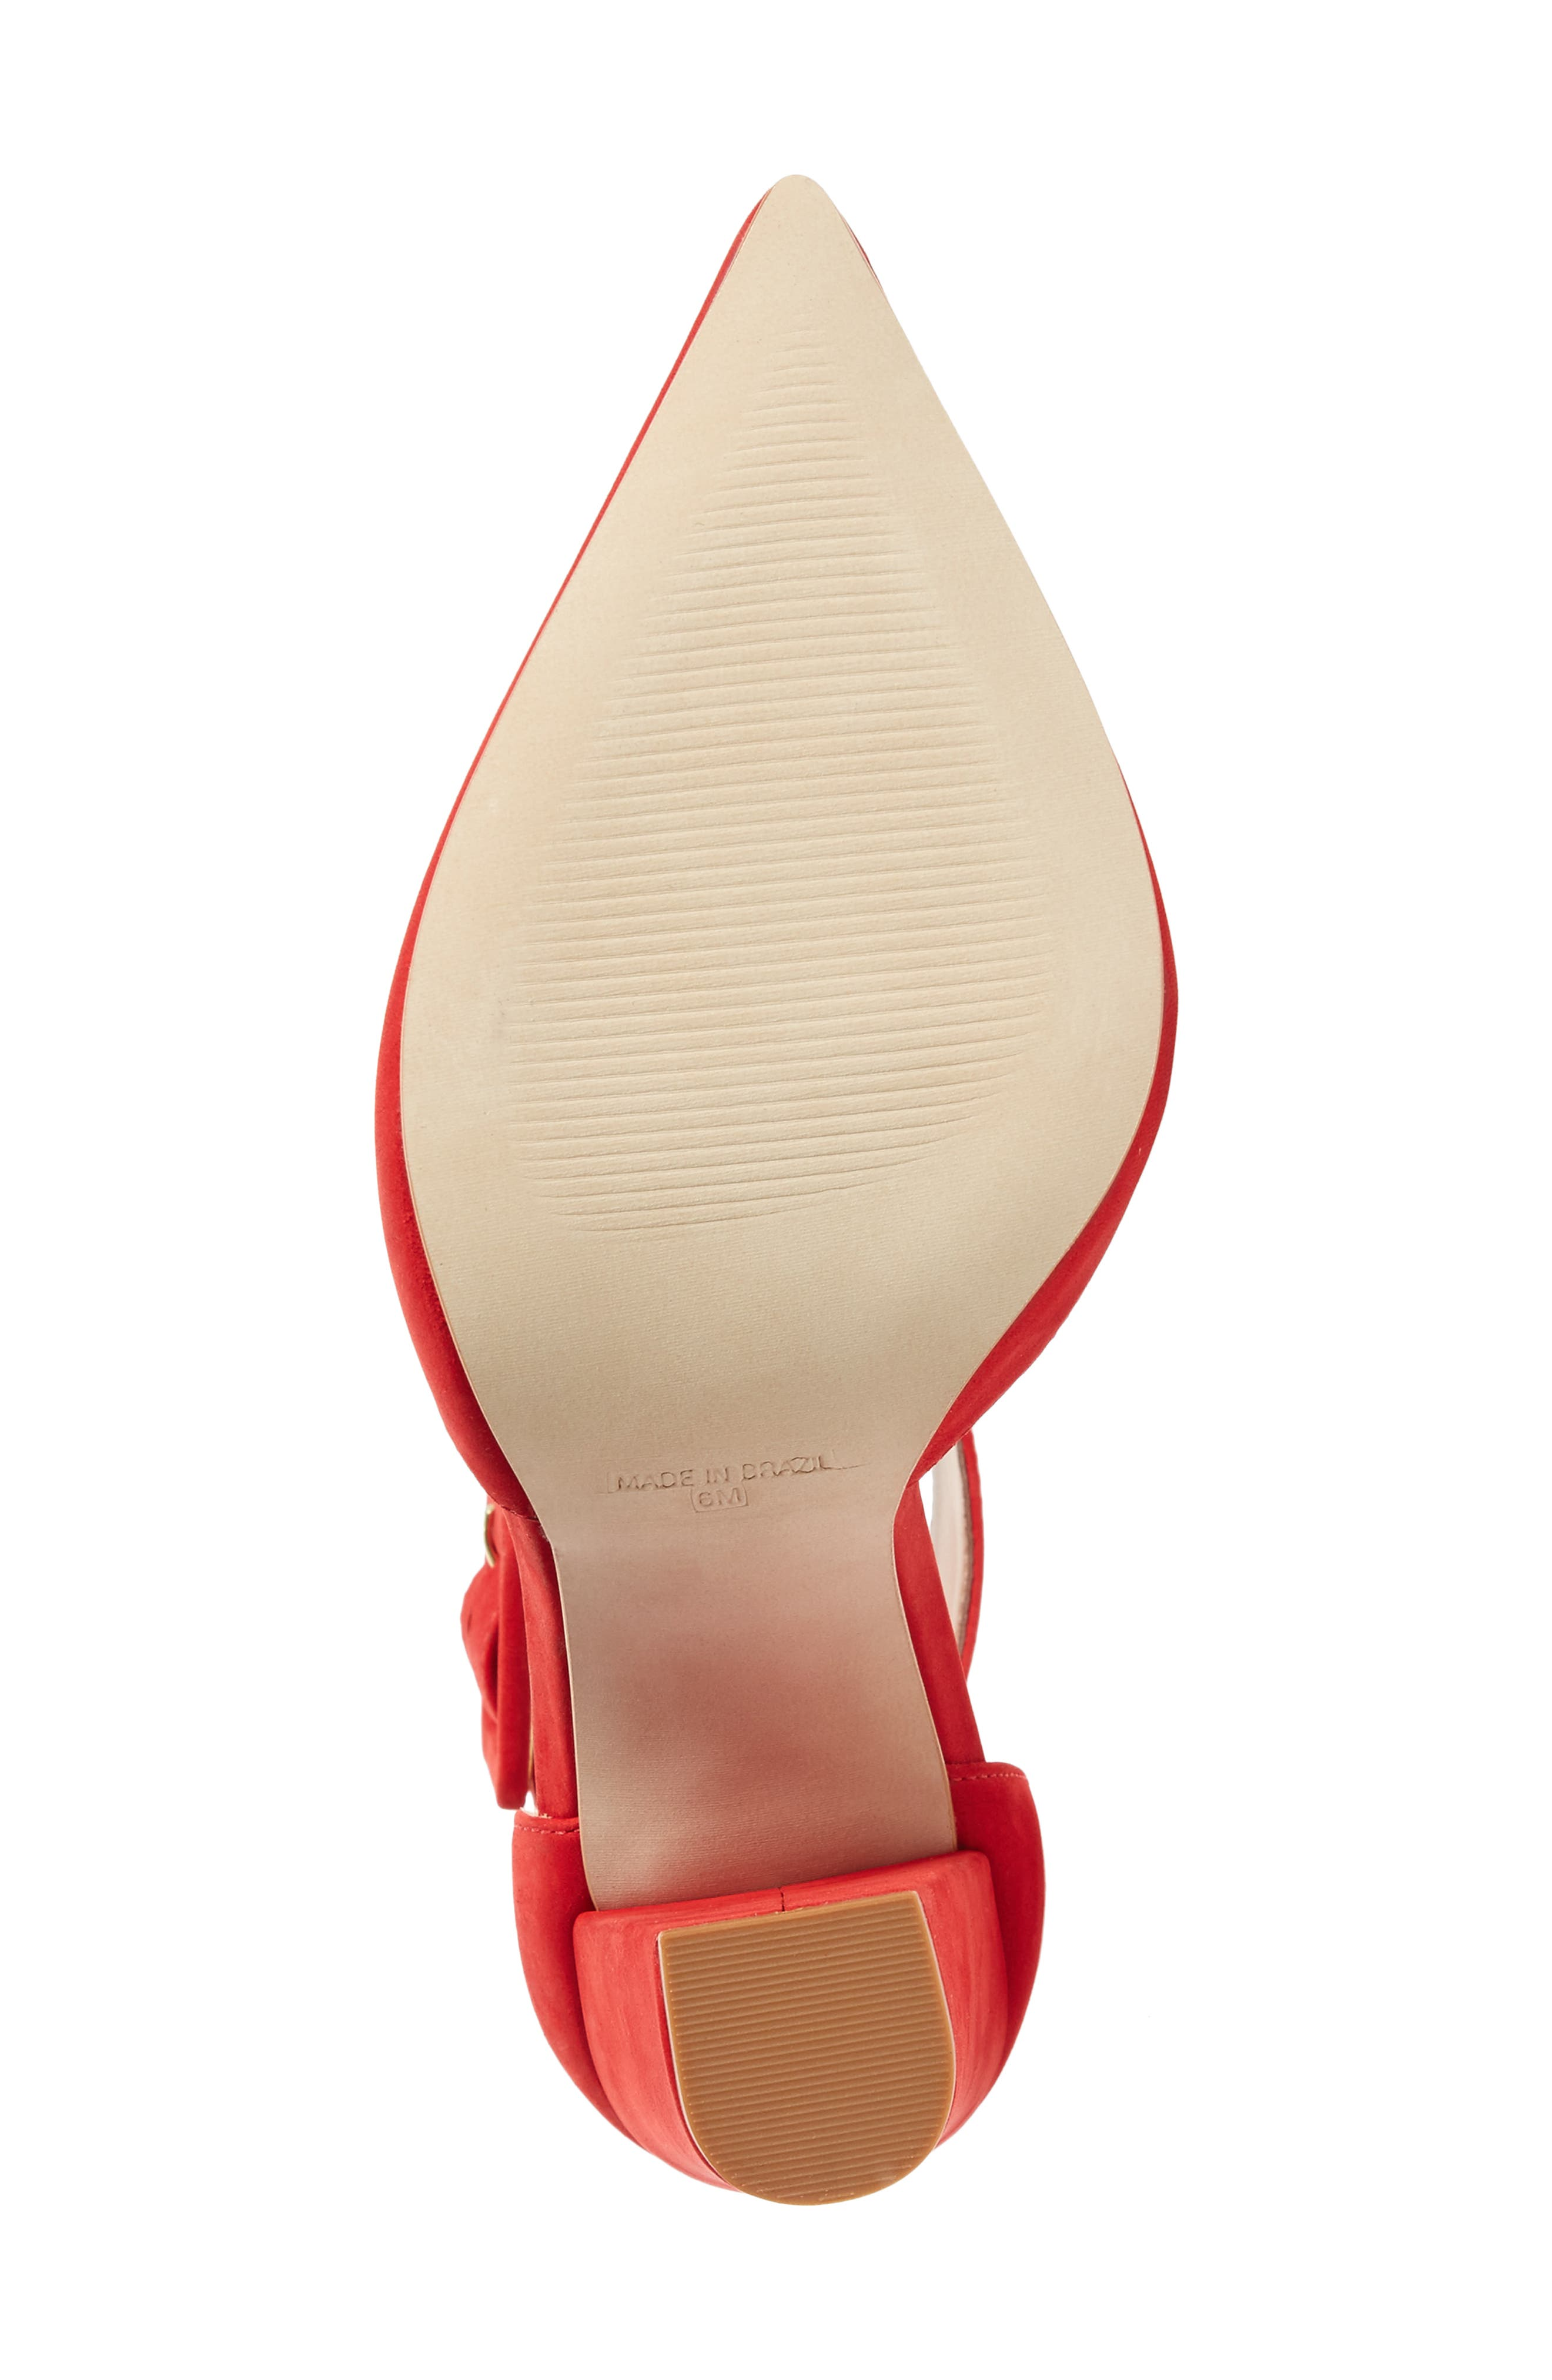 Posted Ankle Strap Pump,                             Alternate thumbnail 6, color,                             Red Nubuck Leather